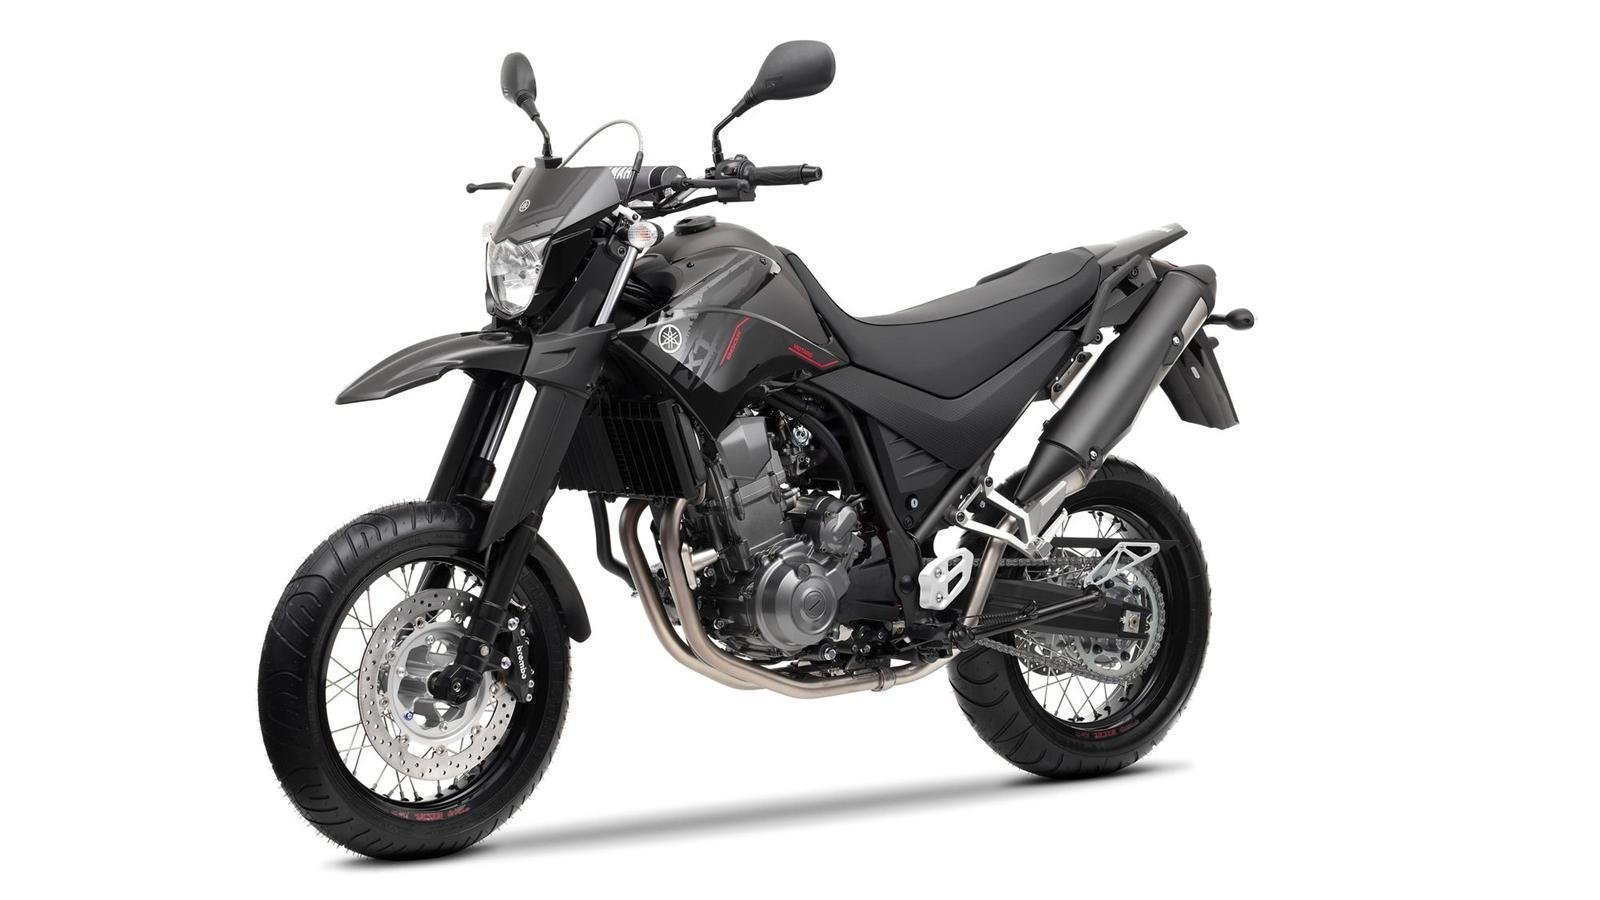 2013 Yamaha XT660X - Picture 501352   motorcycle review ...